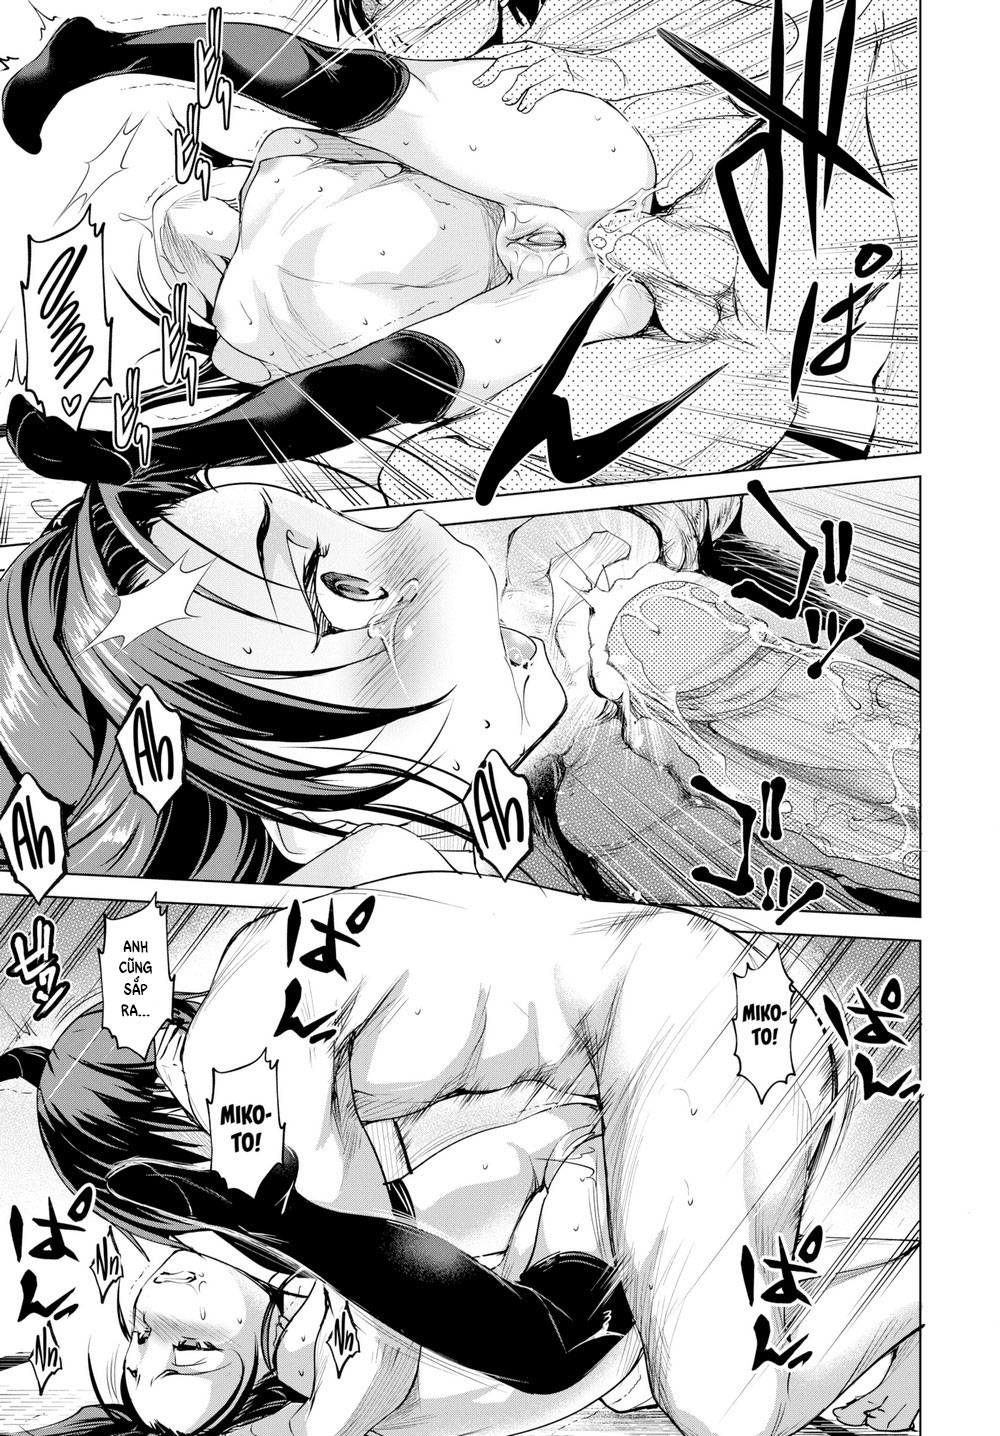 HentaiVN.net - Ảnh 21 - *** with Big Brother - Oneshot